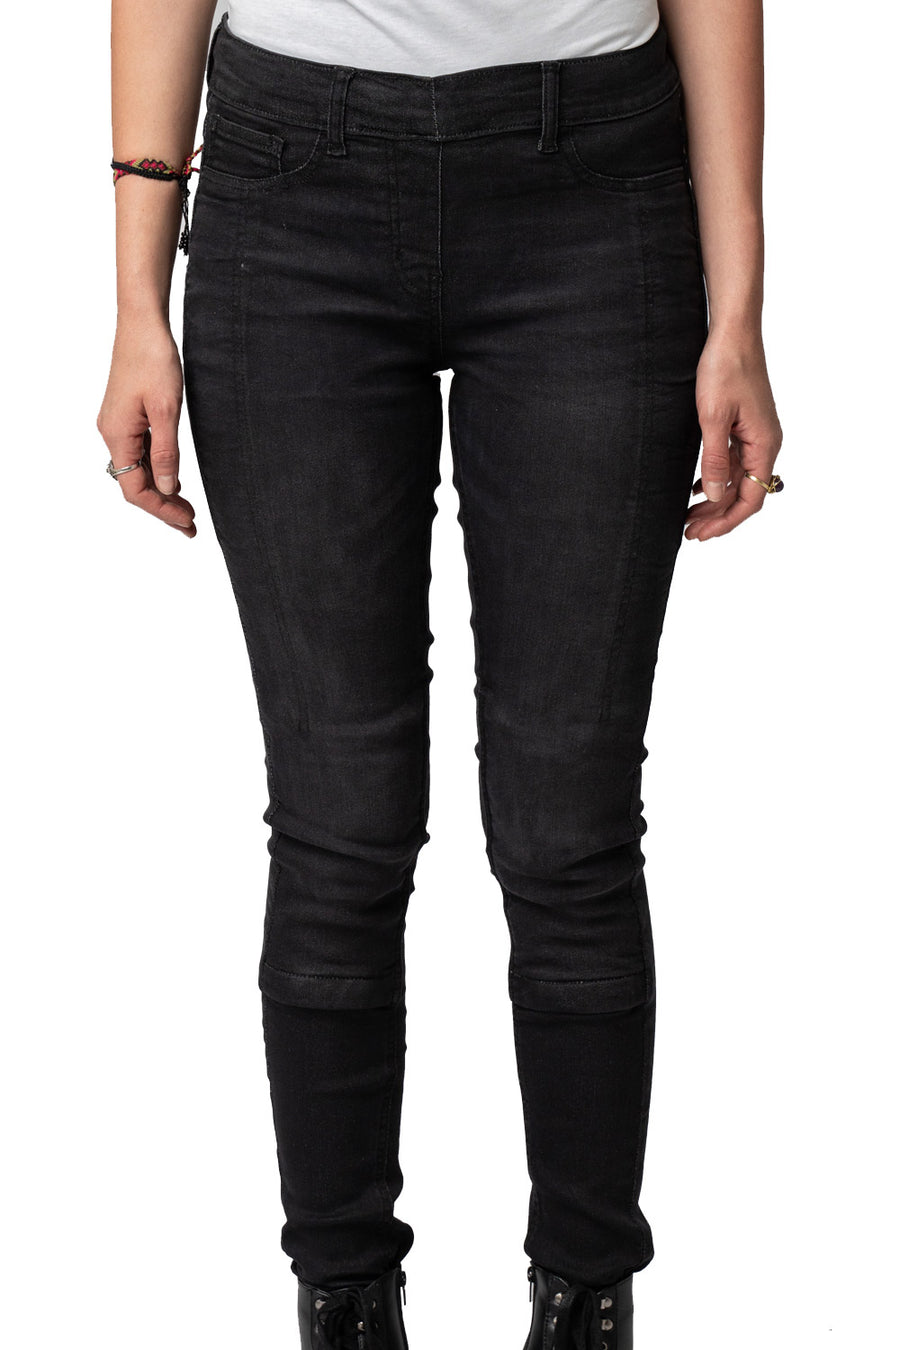 Stretch Skinny Women's Protective Motorcycle Jeans